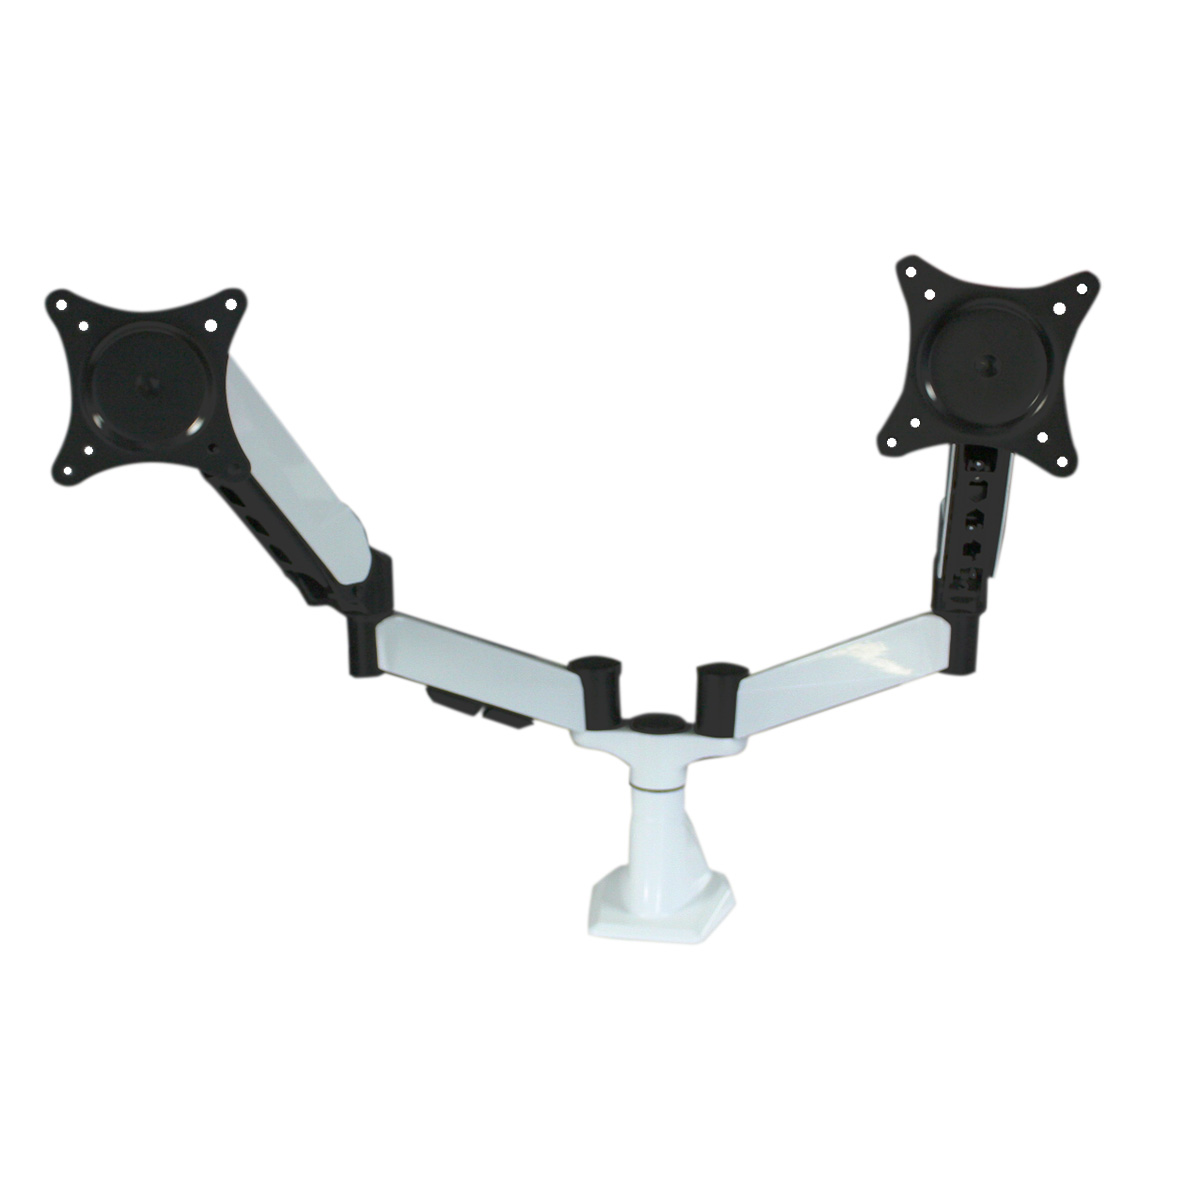 DM1527-D White Desk Monitor Mount